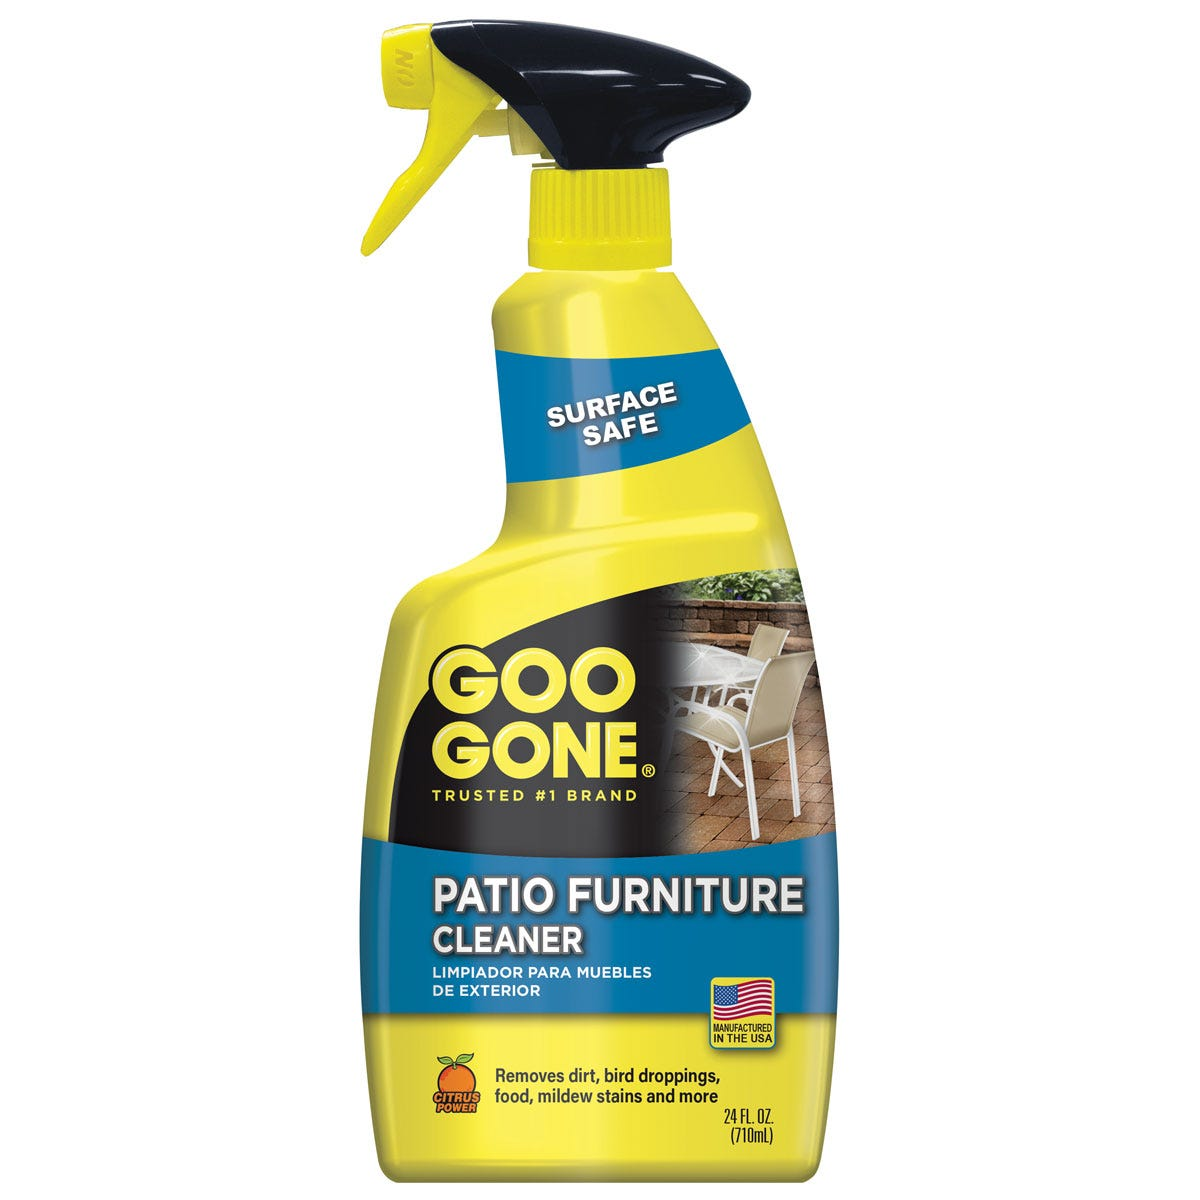 Goo Gone Patio Furniture Cleaner